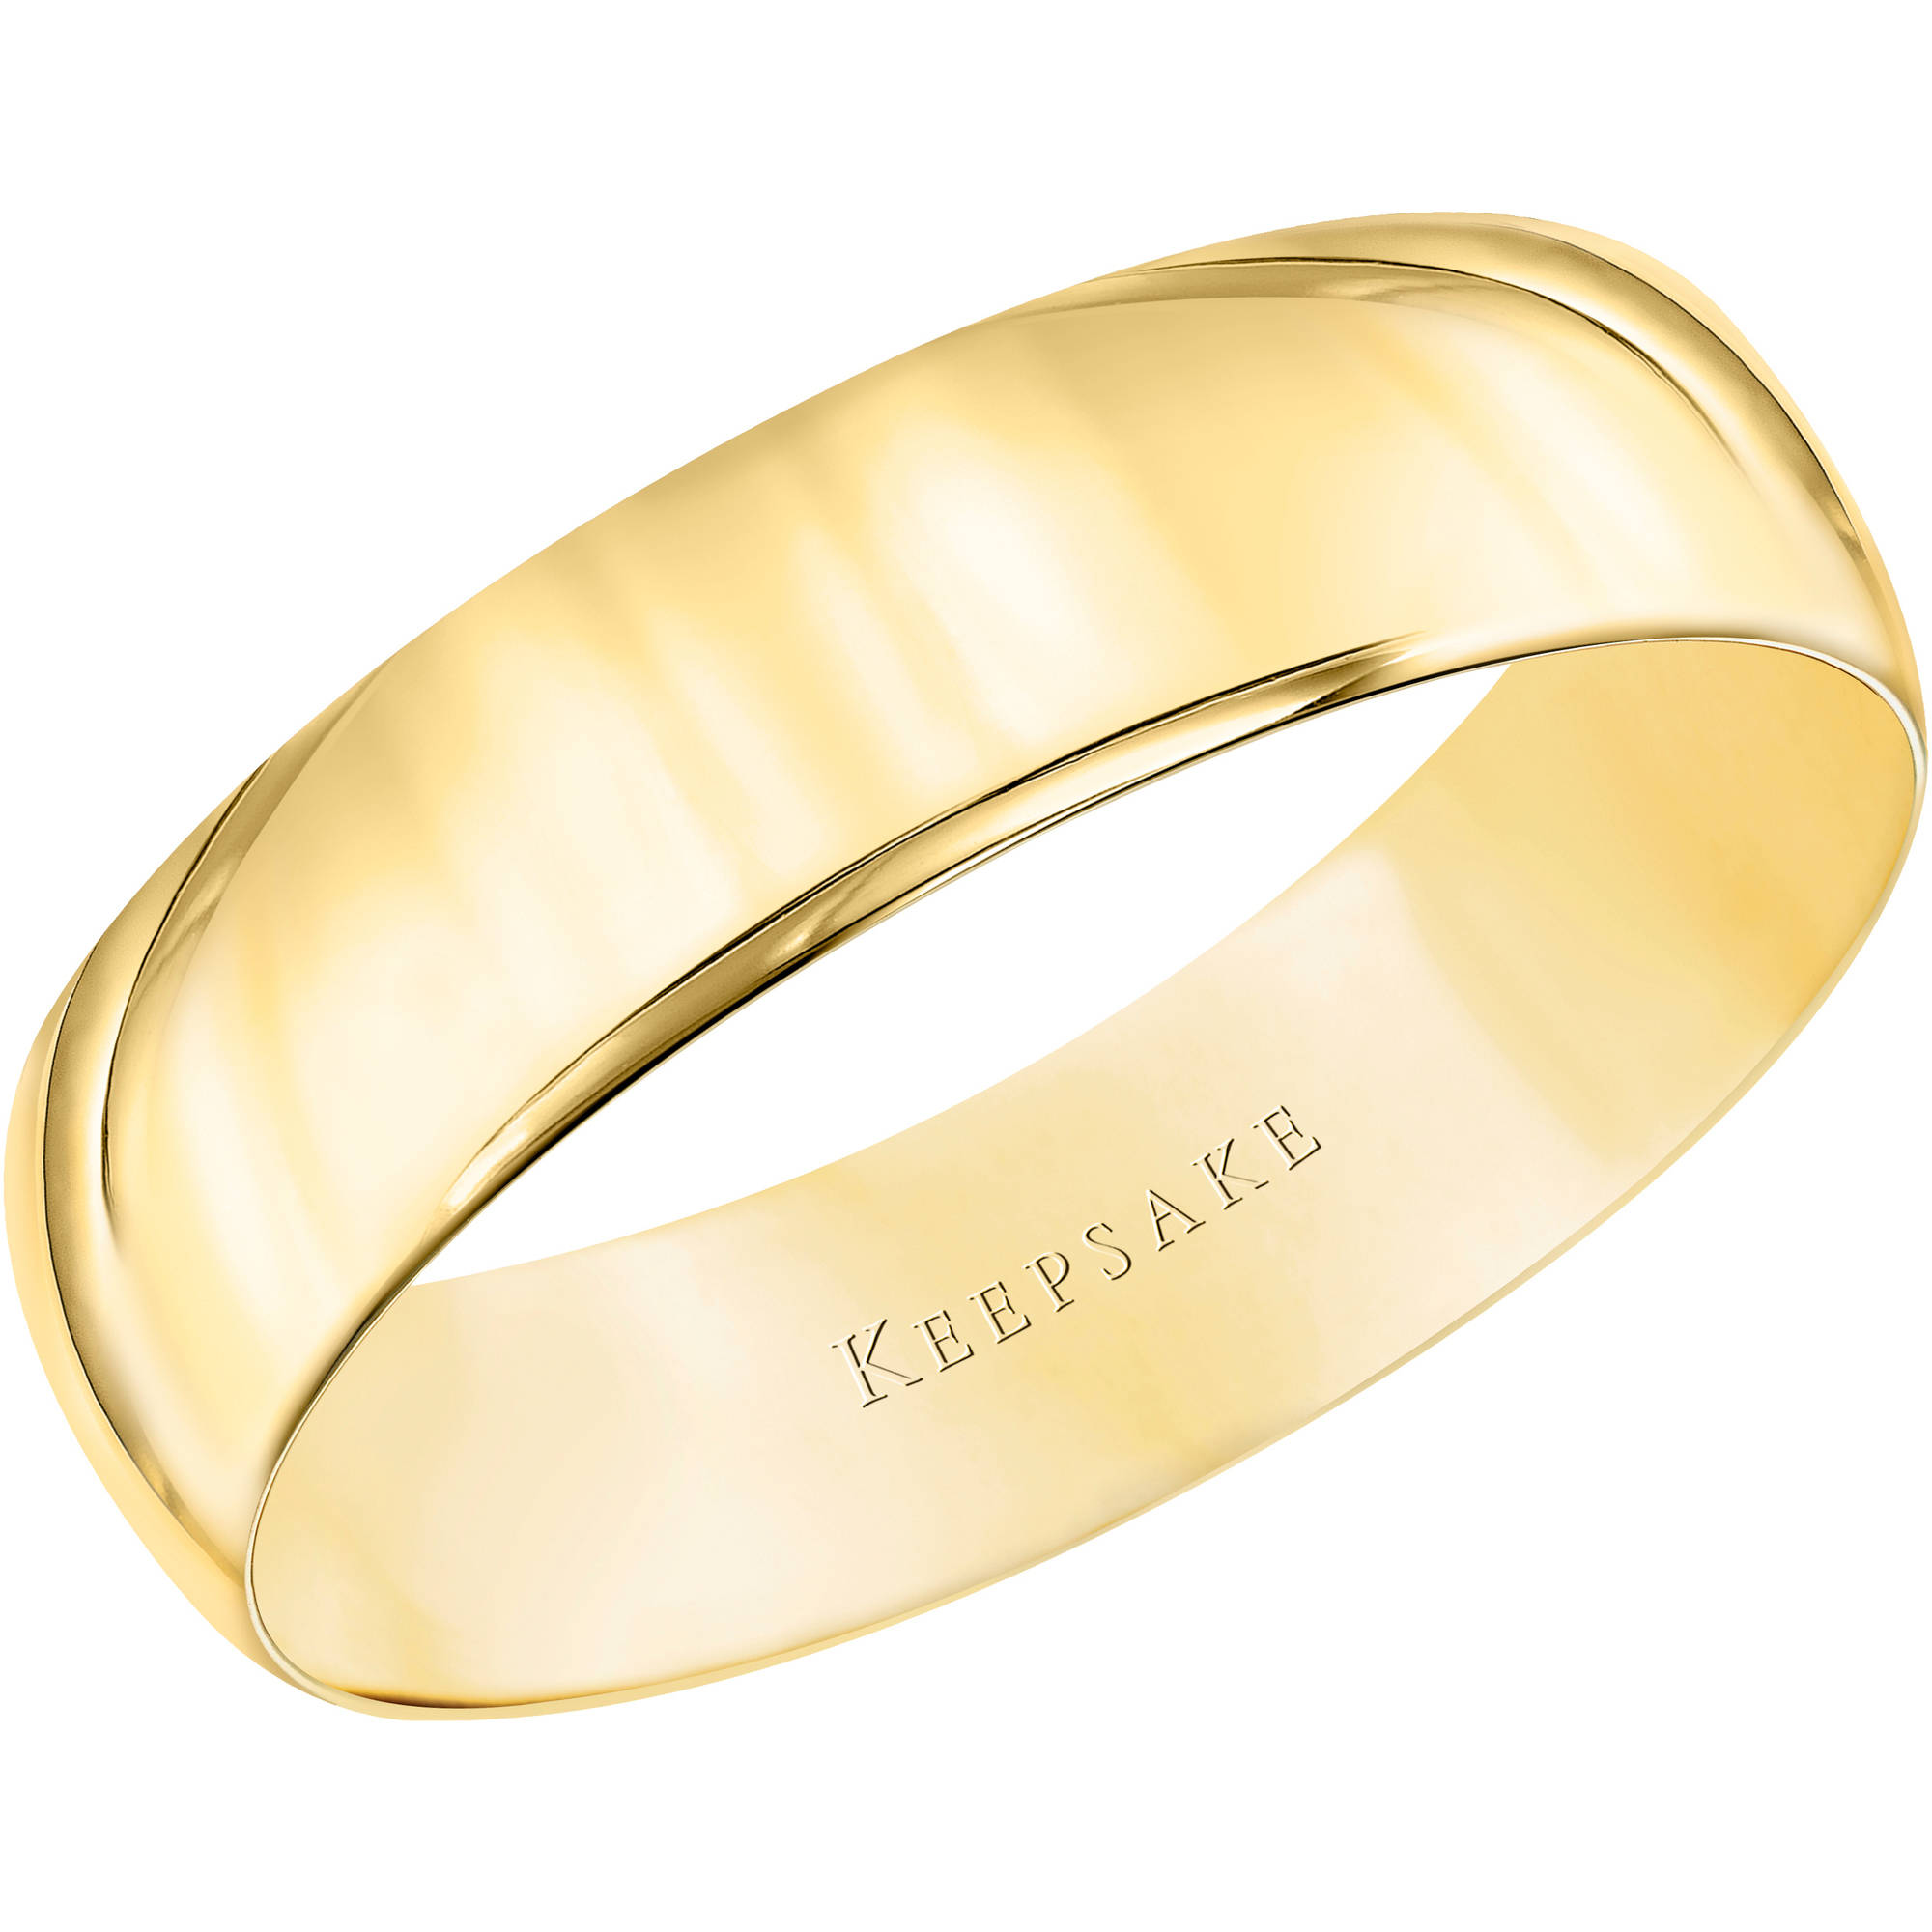 Keepsake 10kt Yellow Gold Wedding Band With High-Polish Finish, 5mm